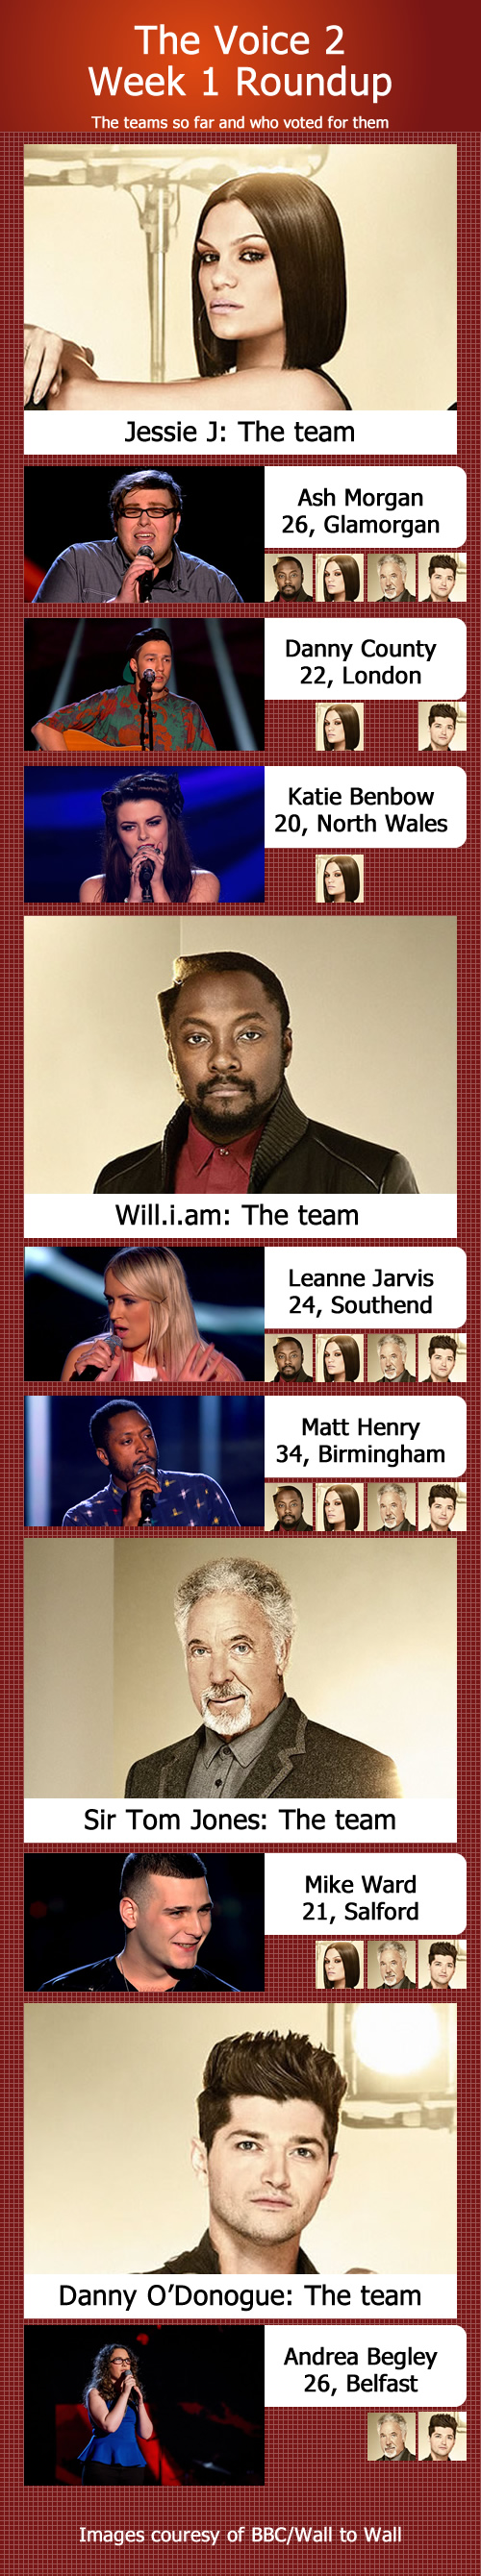 The Voice 2 - Week 1 picture roundup